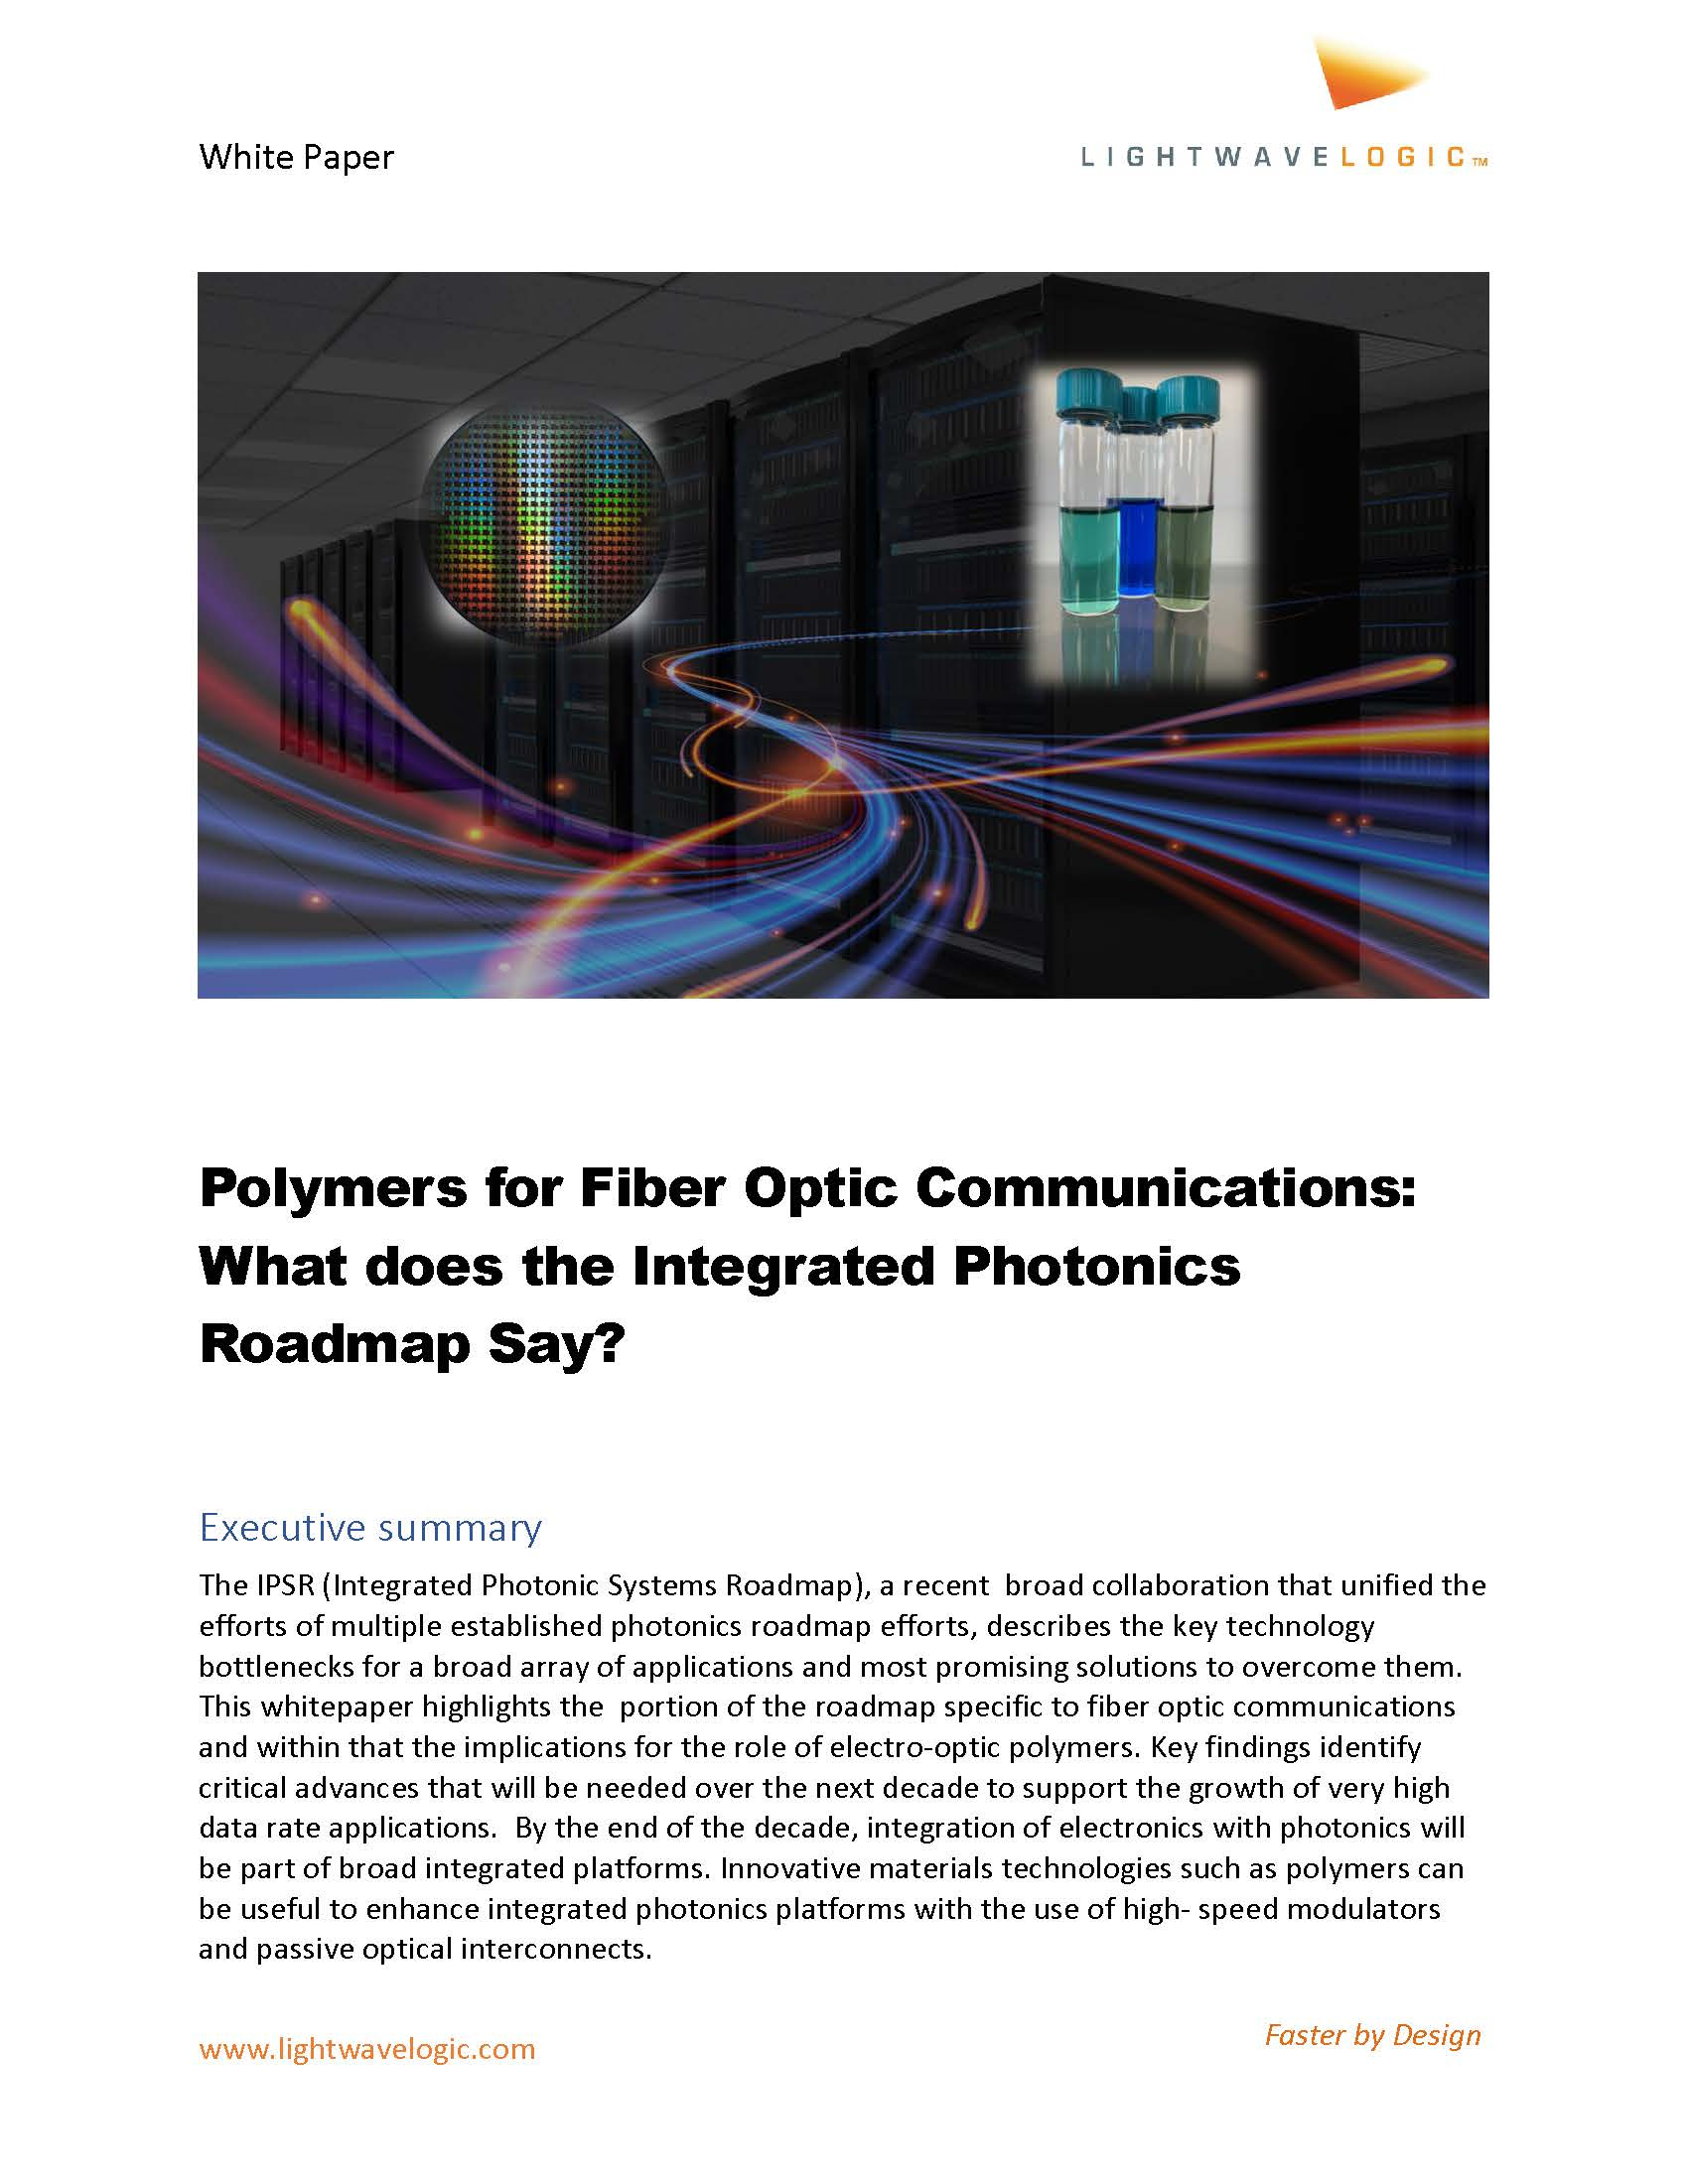 Polymers for Fiber Optic Communications: What does the Integrated Photonics Roadmap Say?